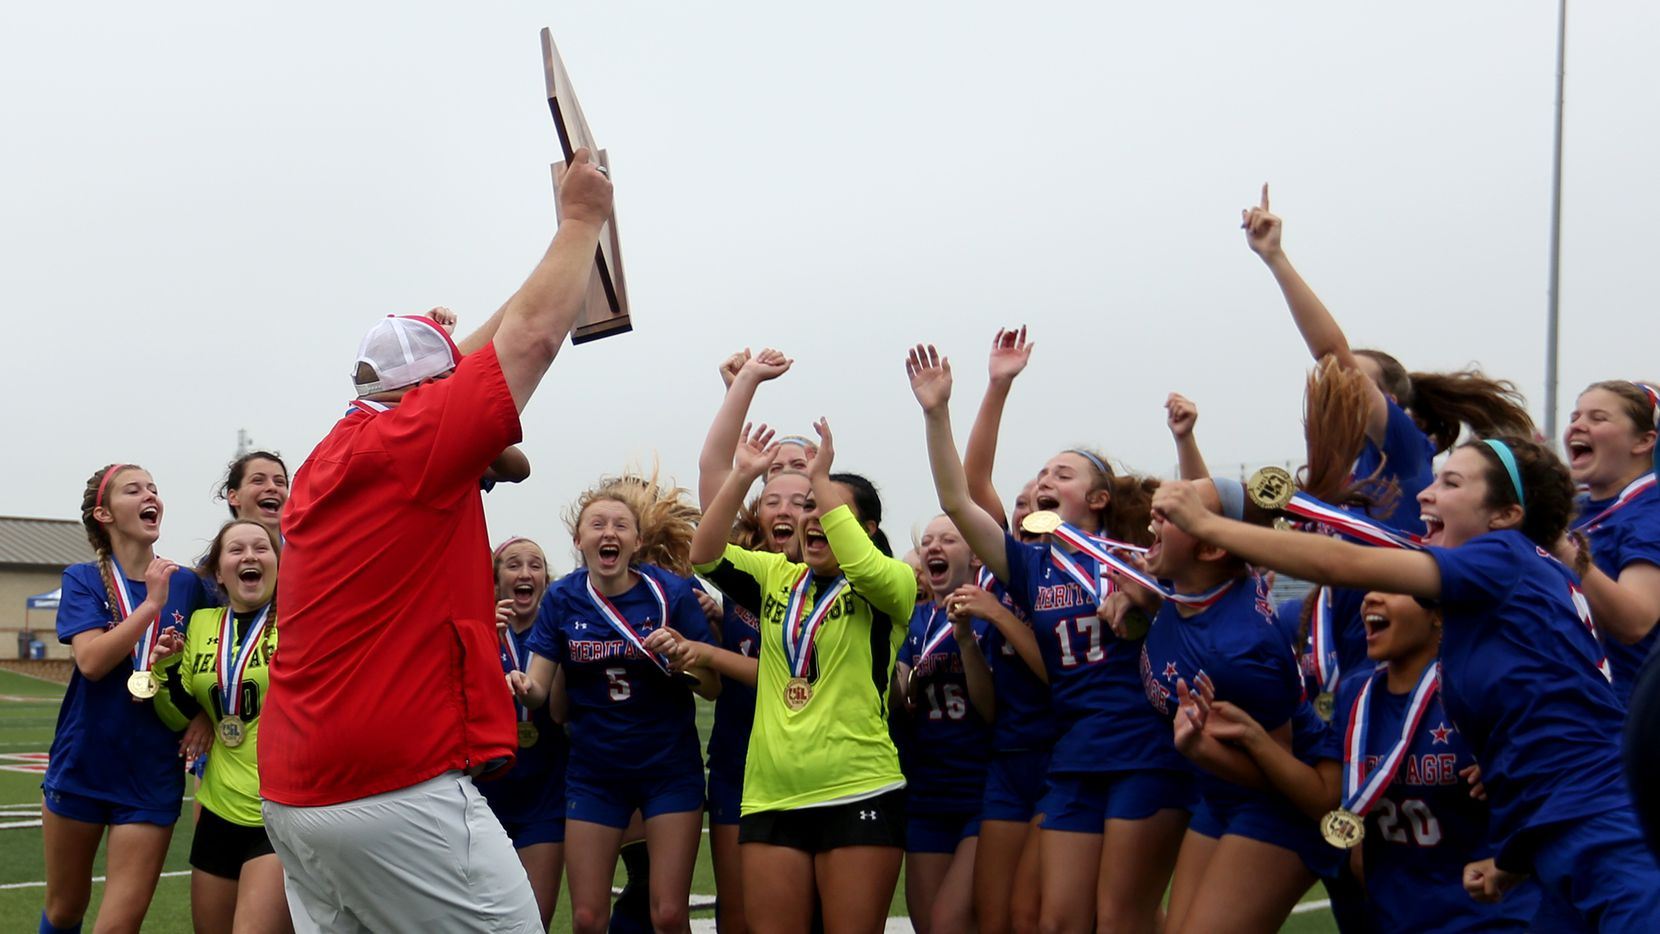 Midlothian Heritage head coach Gerald Slovacek cheers with his players as he holds up the trophy during their win over Calallen at their UIL 4A girls State championship soccer game at Birkelbach Field on April 16, 2021 in Georgetown, Texas.